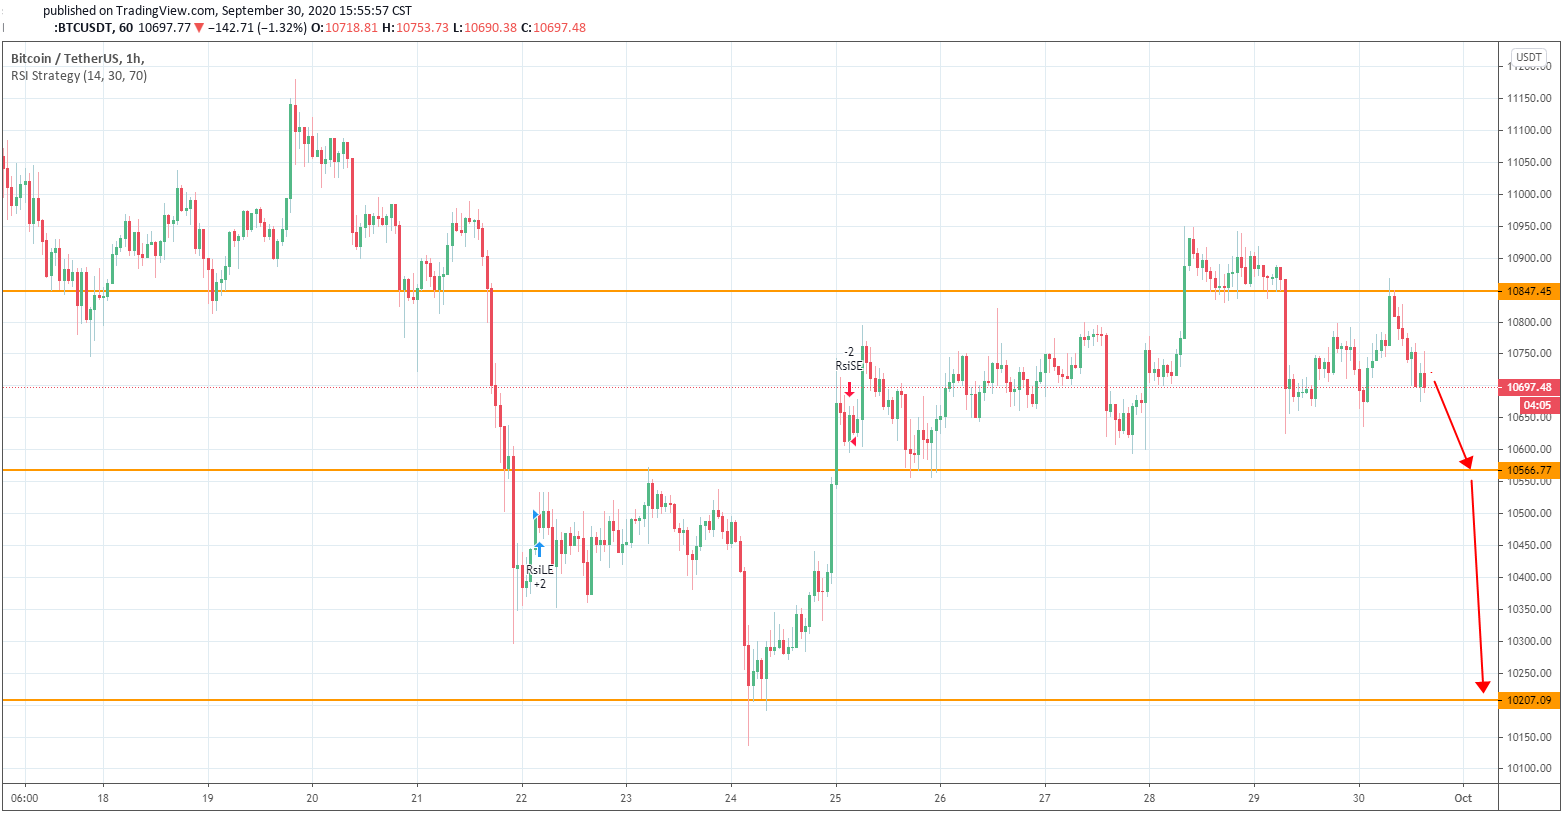 Bitcoin Seems to be Losing its Momentum for Challenging a Higher Target at $11,000